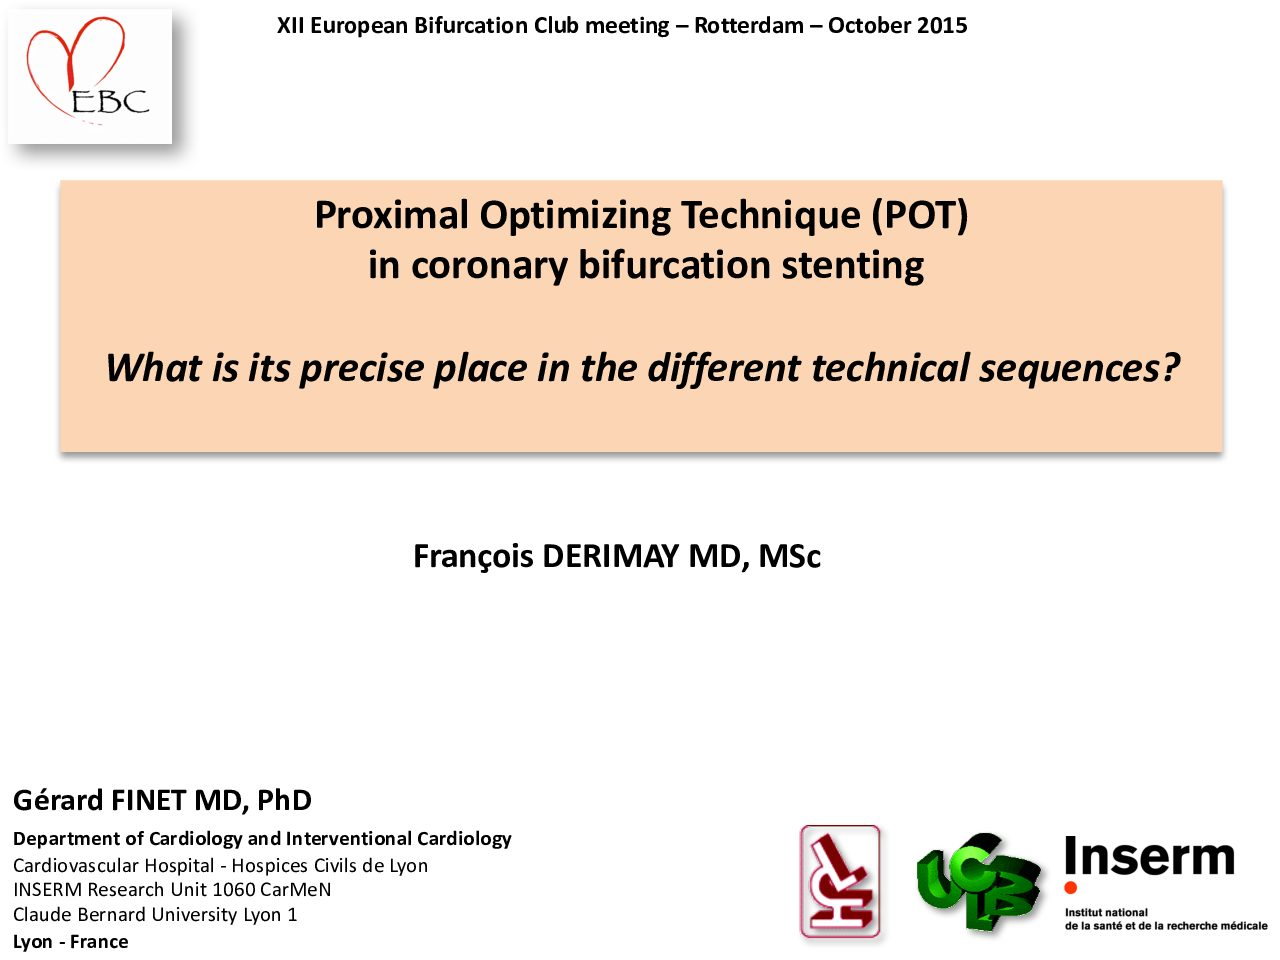 Proximal Optimizing Technique (POT) in coronary bifurcation stenting. What is its precise place in the different technical sequences?